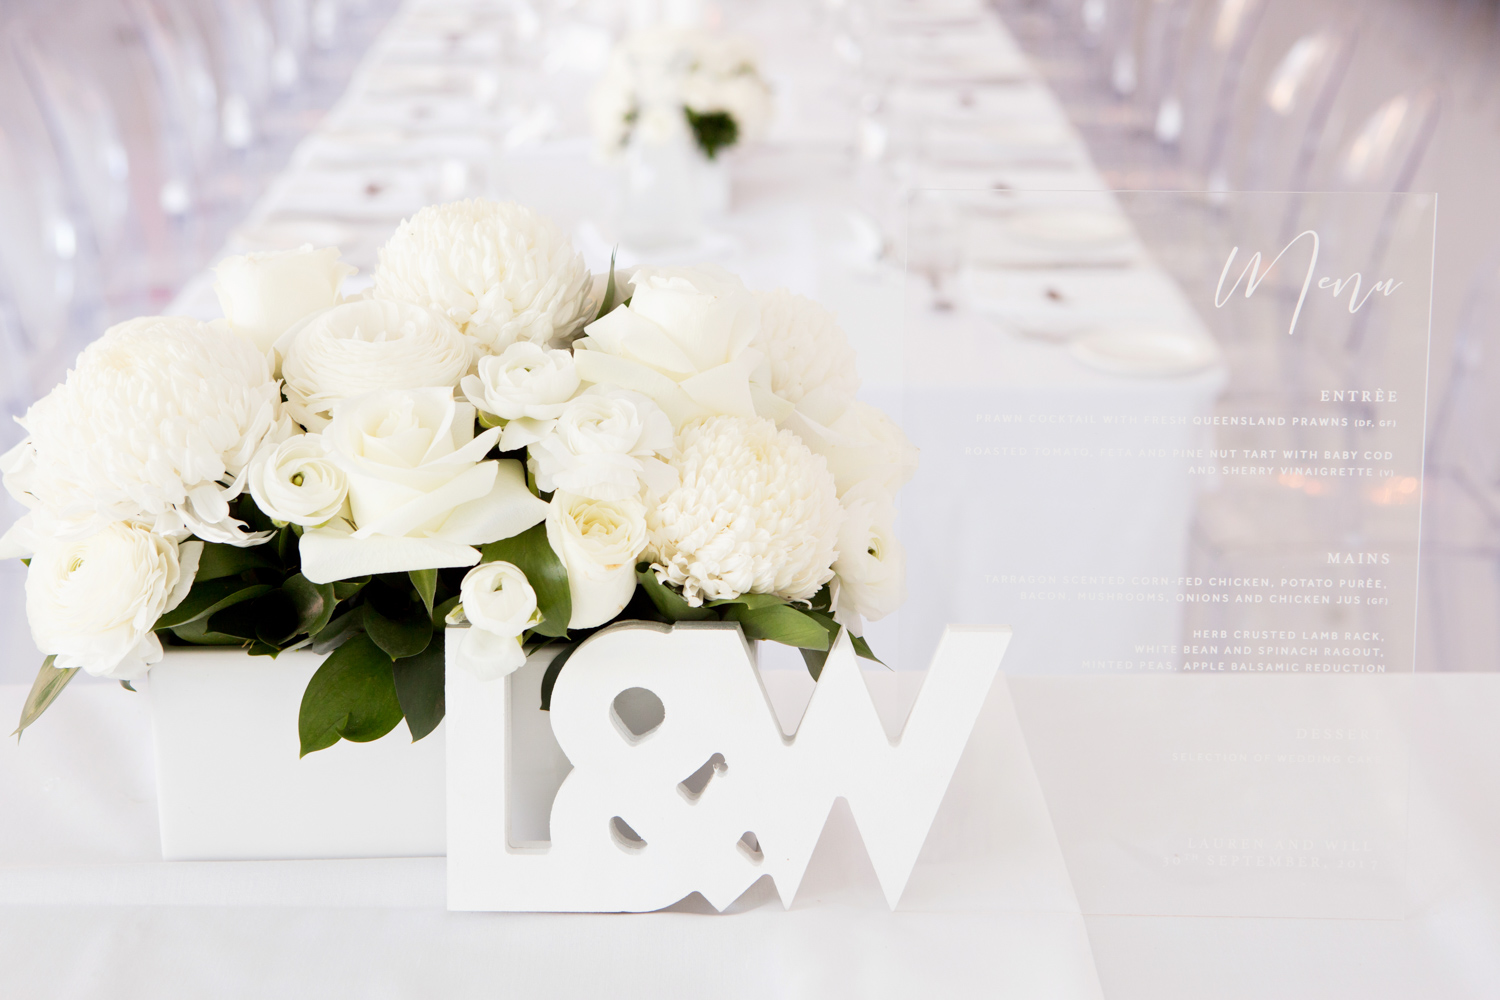 wedding-0155-outrigger-reception-white-flowers-table-queensland.jpg